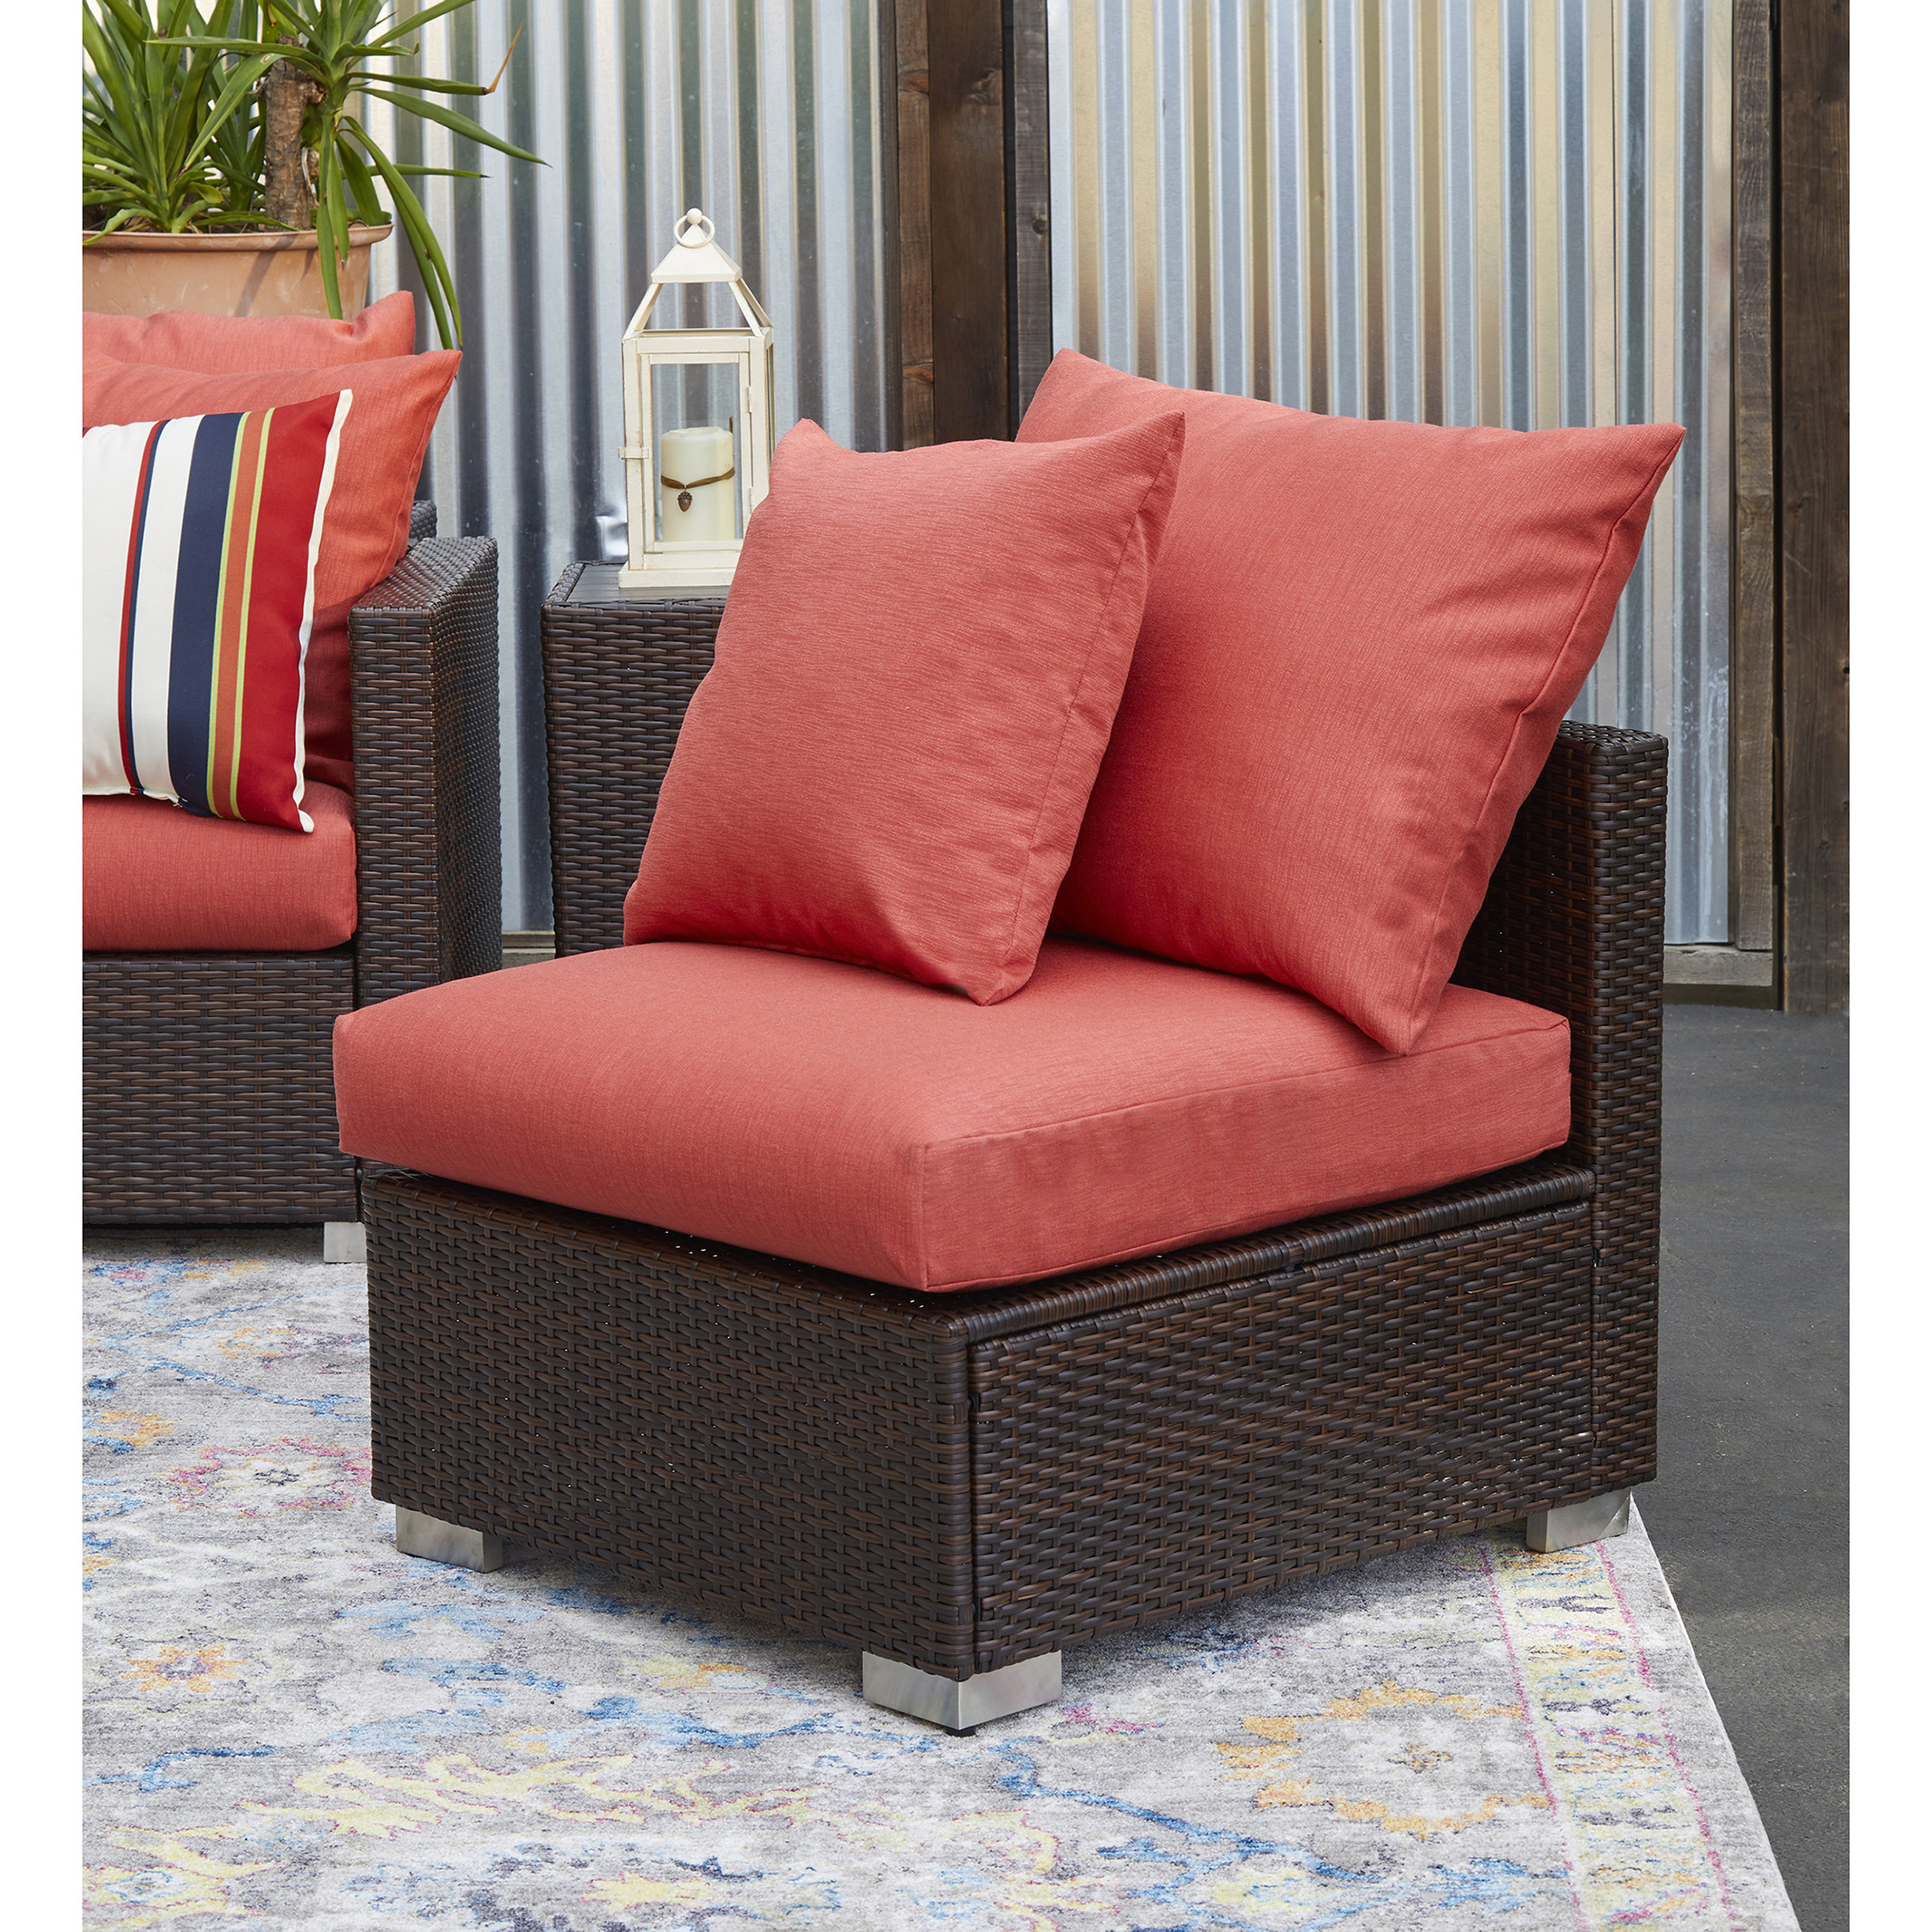 Widely Used Mcmanis Patio Sofas With Cushion With Regard To Mcmanis Outdoor Patio Chair With Cushions (View 18 of 20)